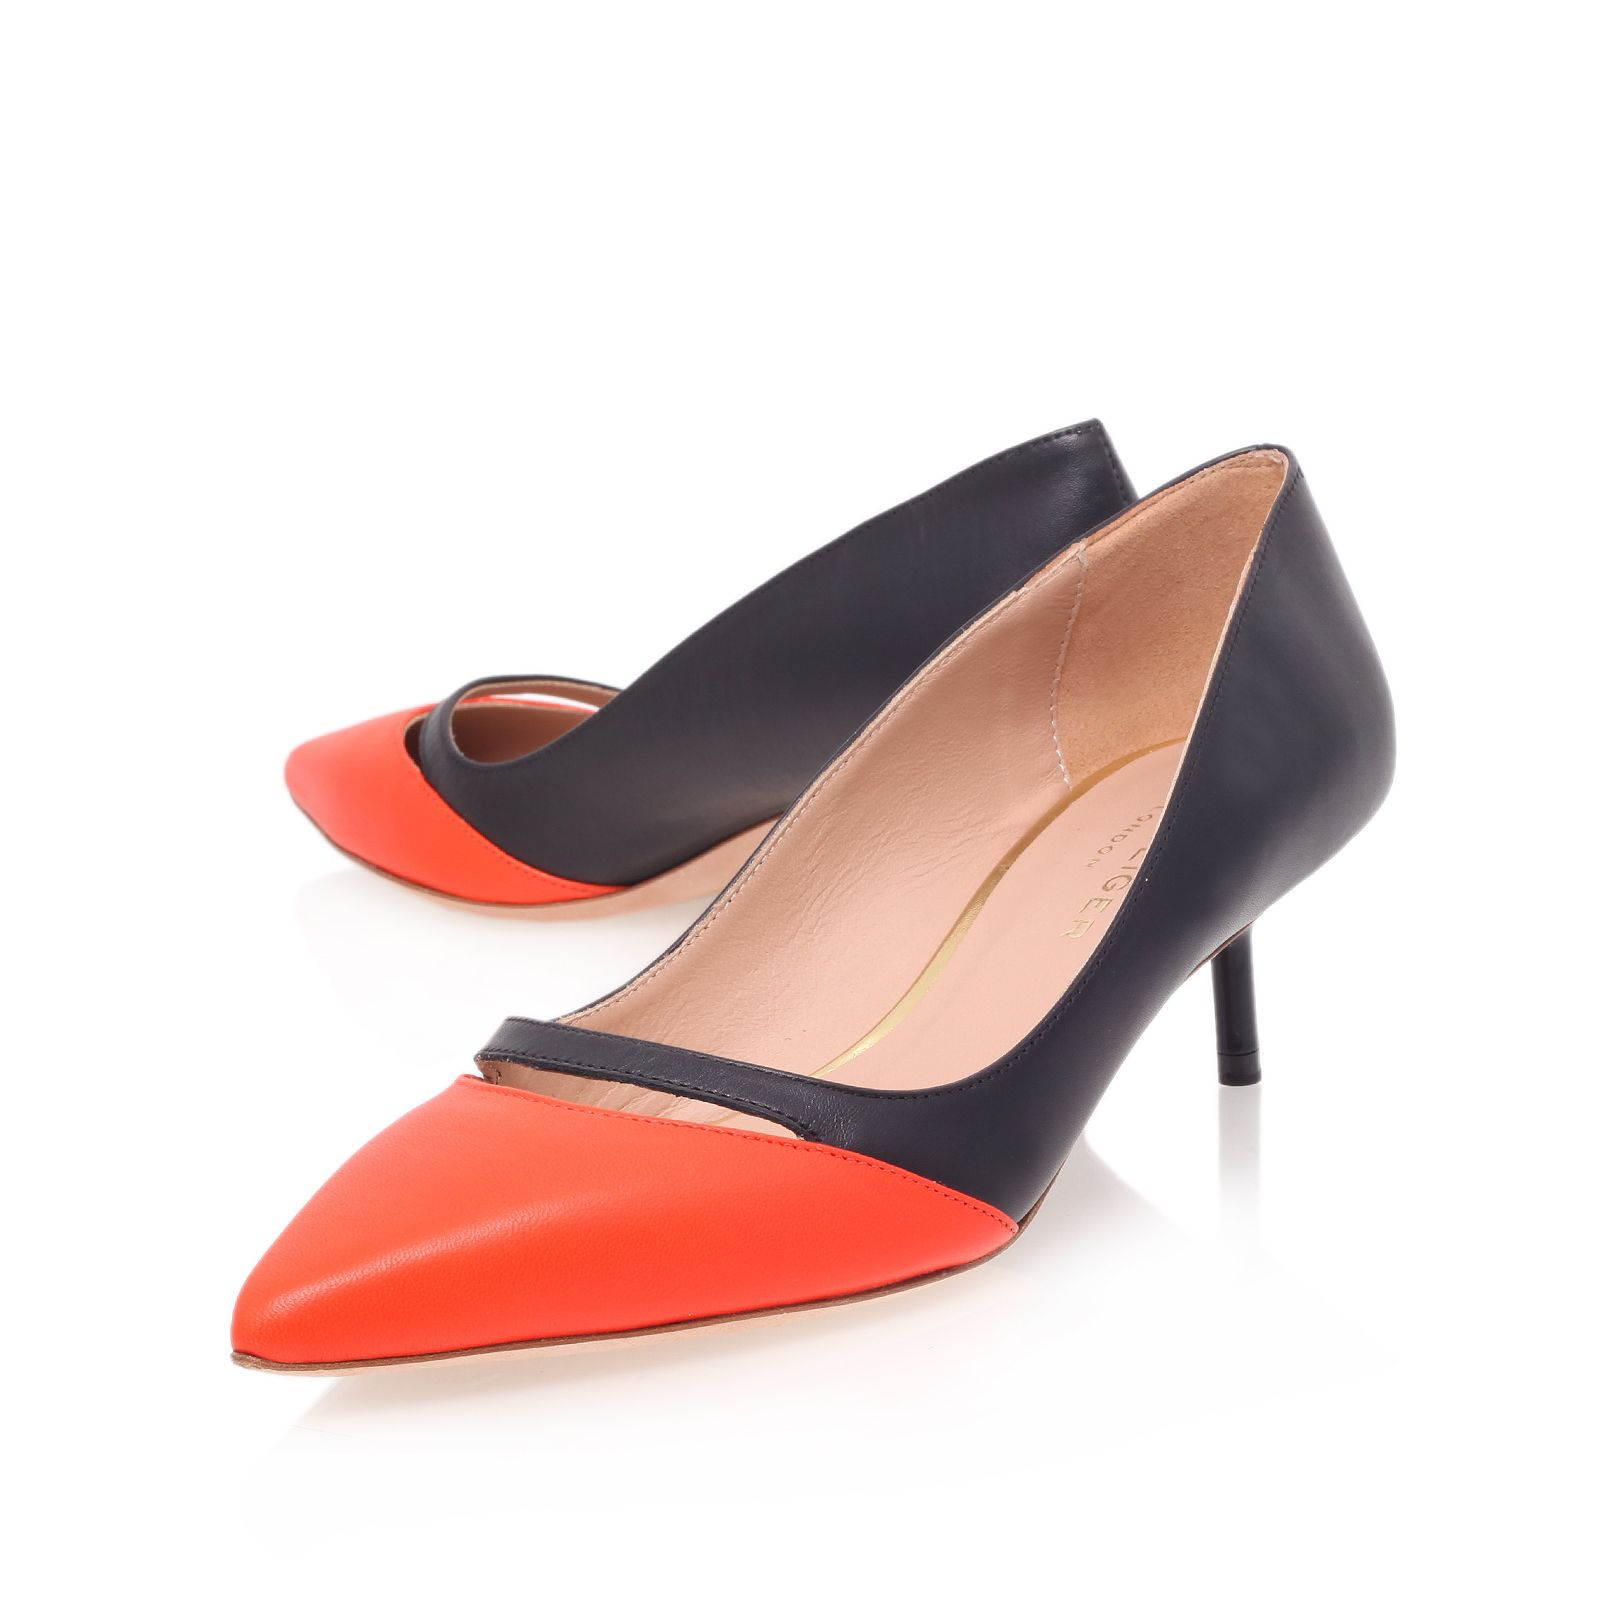 Cordelia low heel court shoes